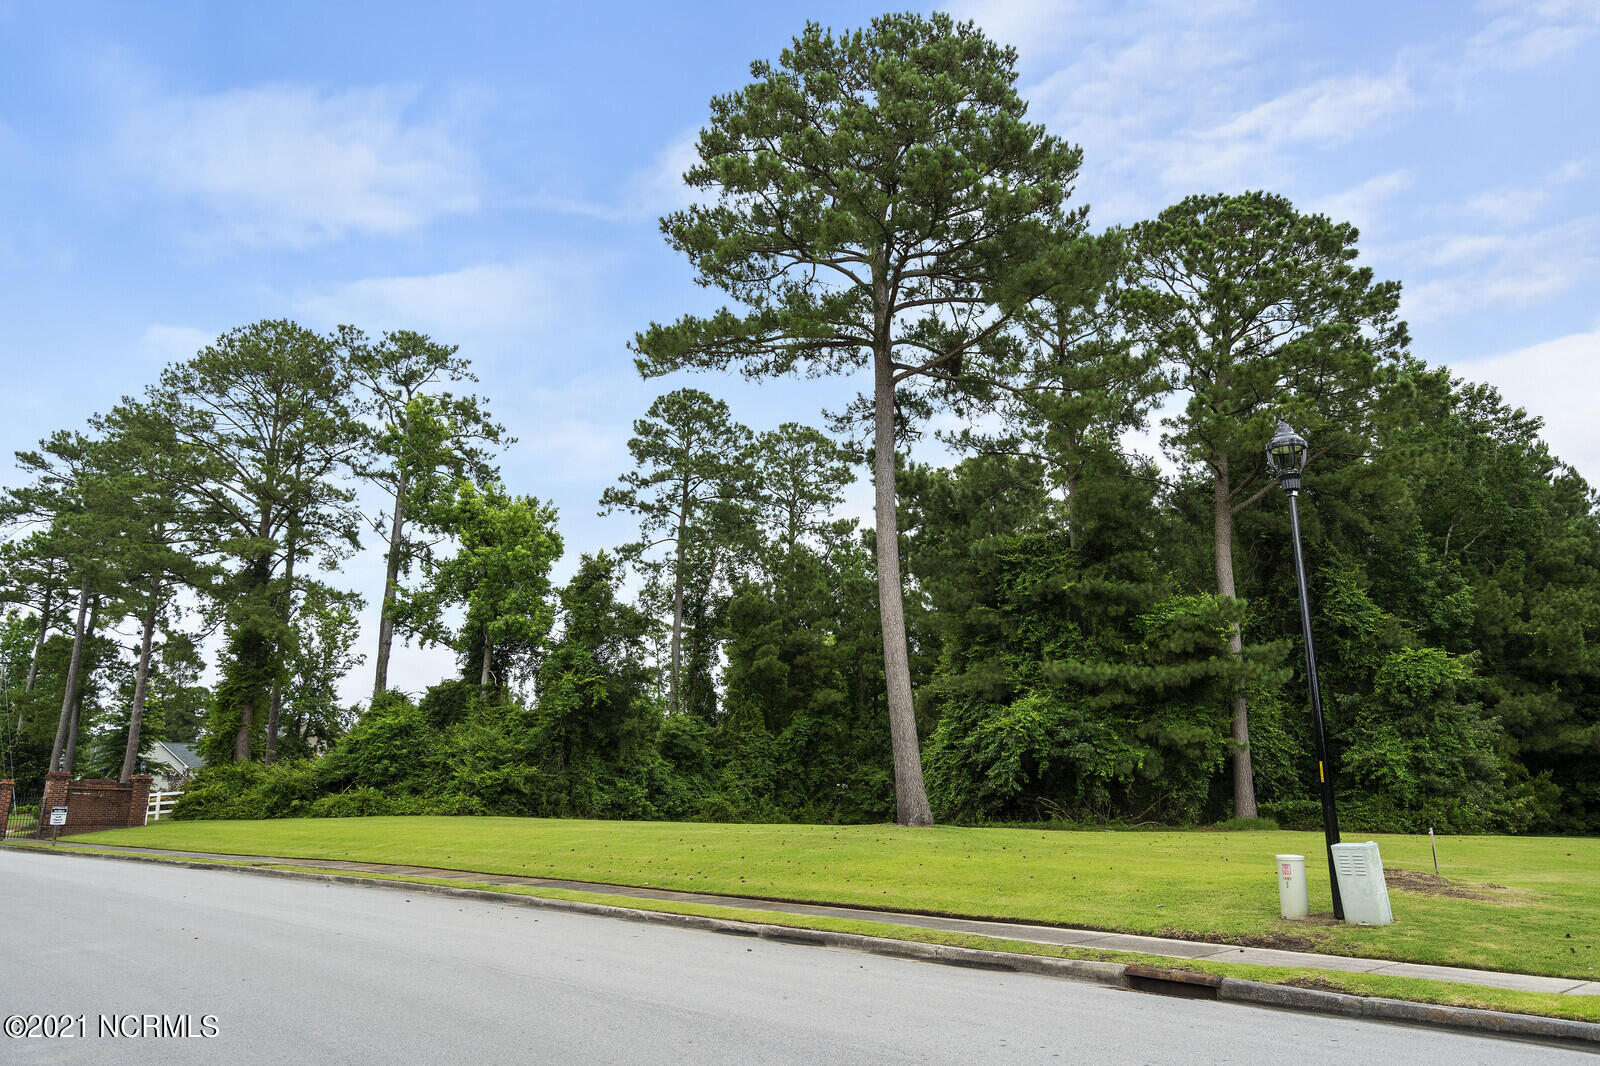 Partially cleared acreage in Williams Farm neighborhood is ready for your dream home!Williams Farm is a gated, custom home community, affording residents use of a clubhouse and swimming pool.Close to Northwoods Park Middle School, Parkwoods Elementary & JASA soccer fields, Onslow Public Library. Shopping and dining conveniences, as well as Jacksonville Mall, easily accessible along nearby Marine Blvd. Jacksonville Country Club, Phillips & Sherwood Forest parks, Hammocks Beach State Park among recreation available in the area. Easy commute--just 9 miles to MCAS New River and 18 miles to Camp Lejeune.